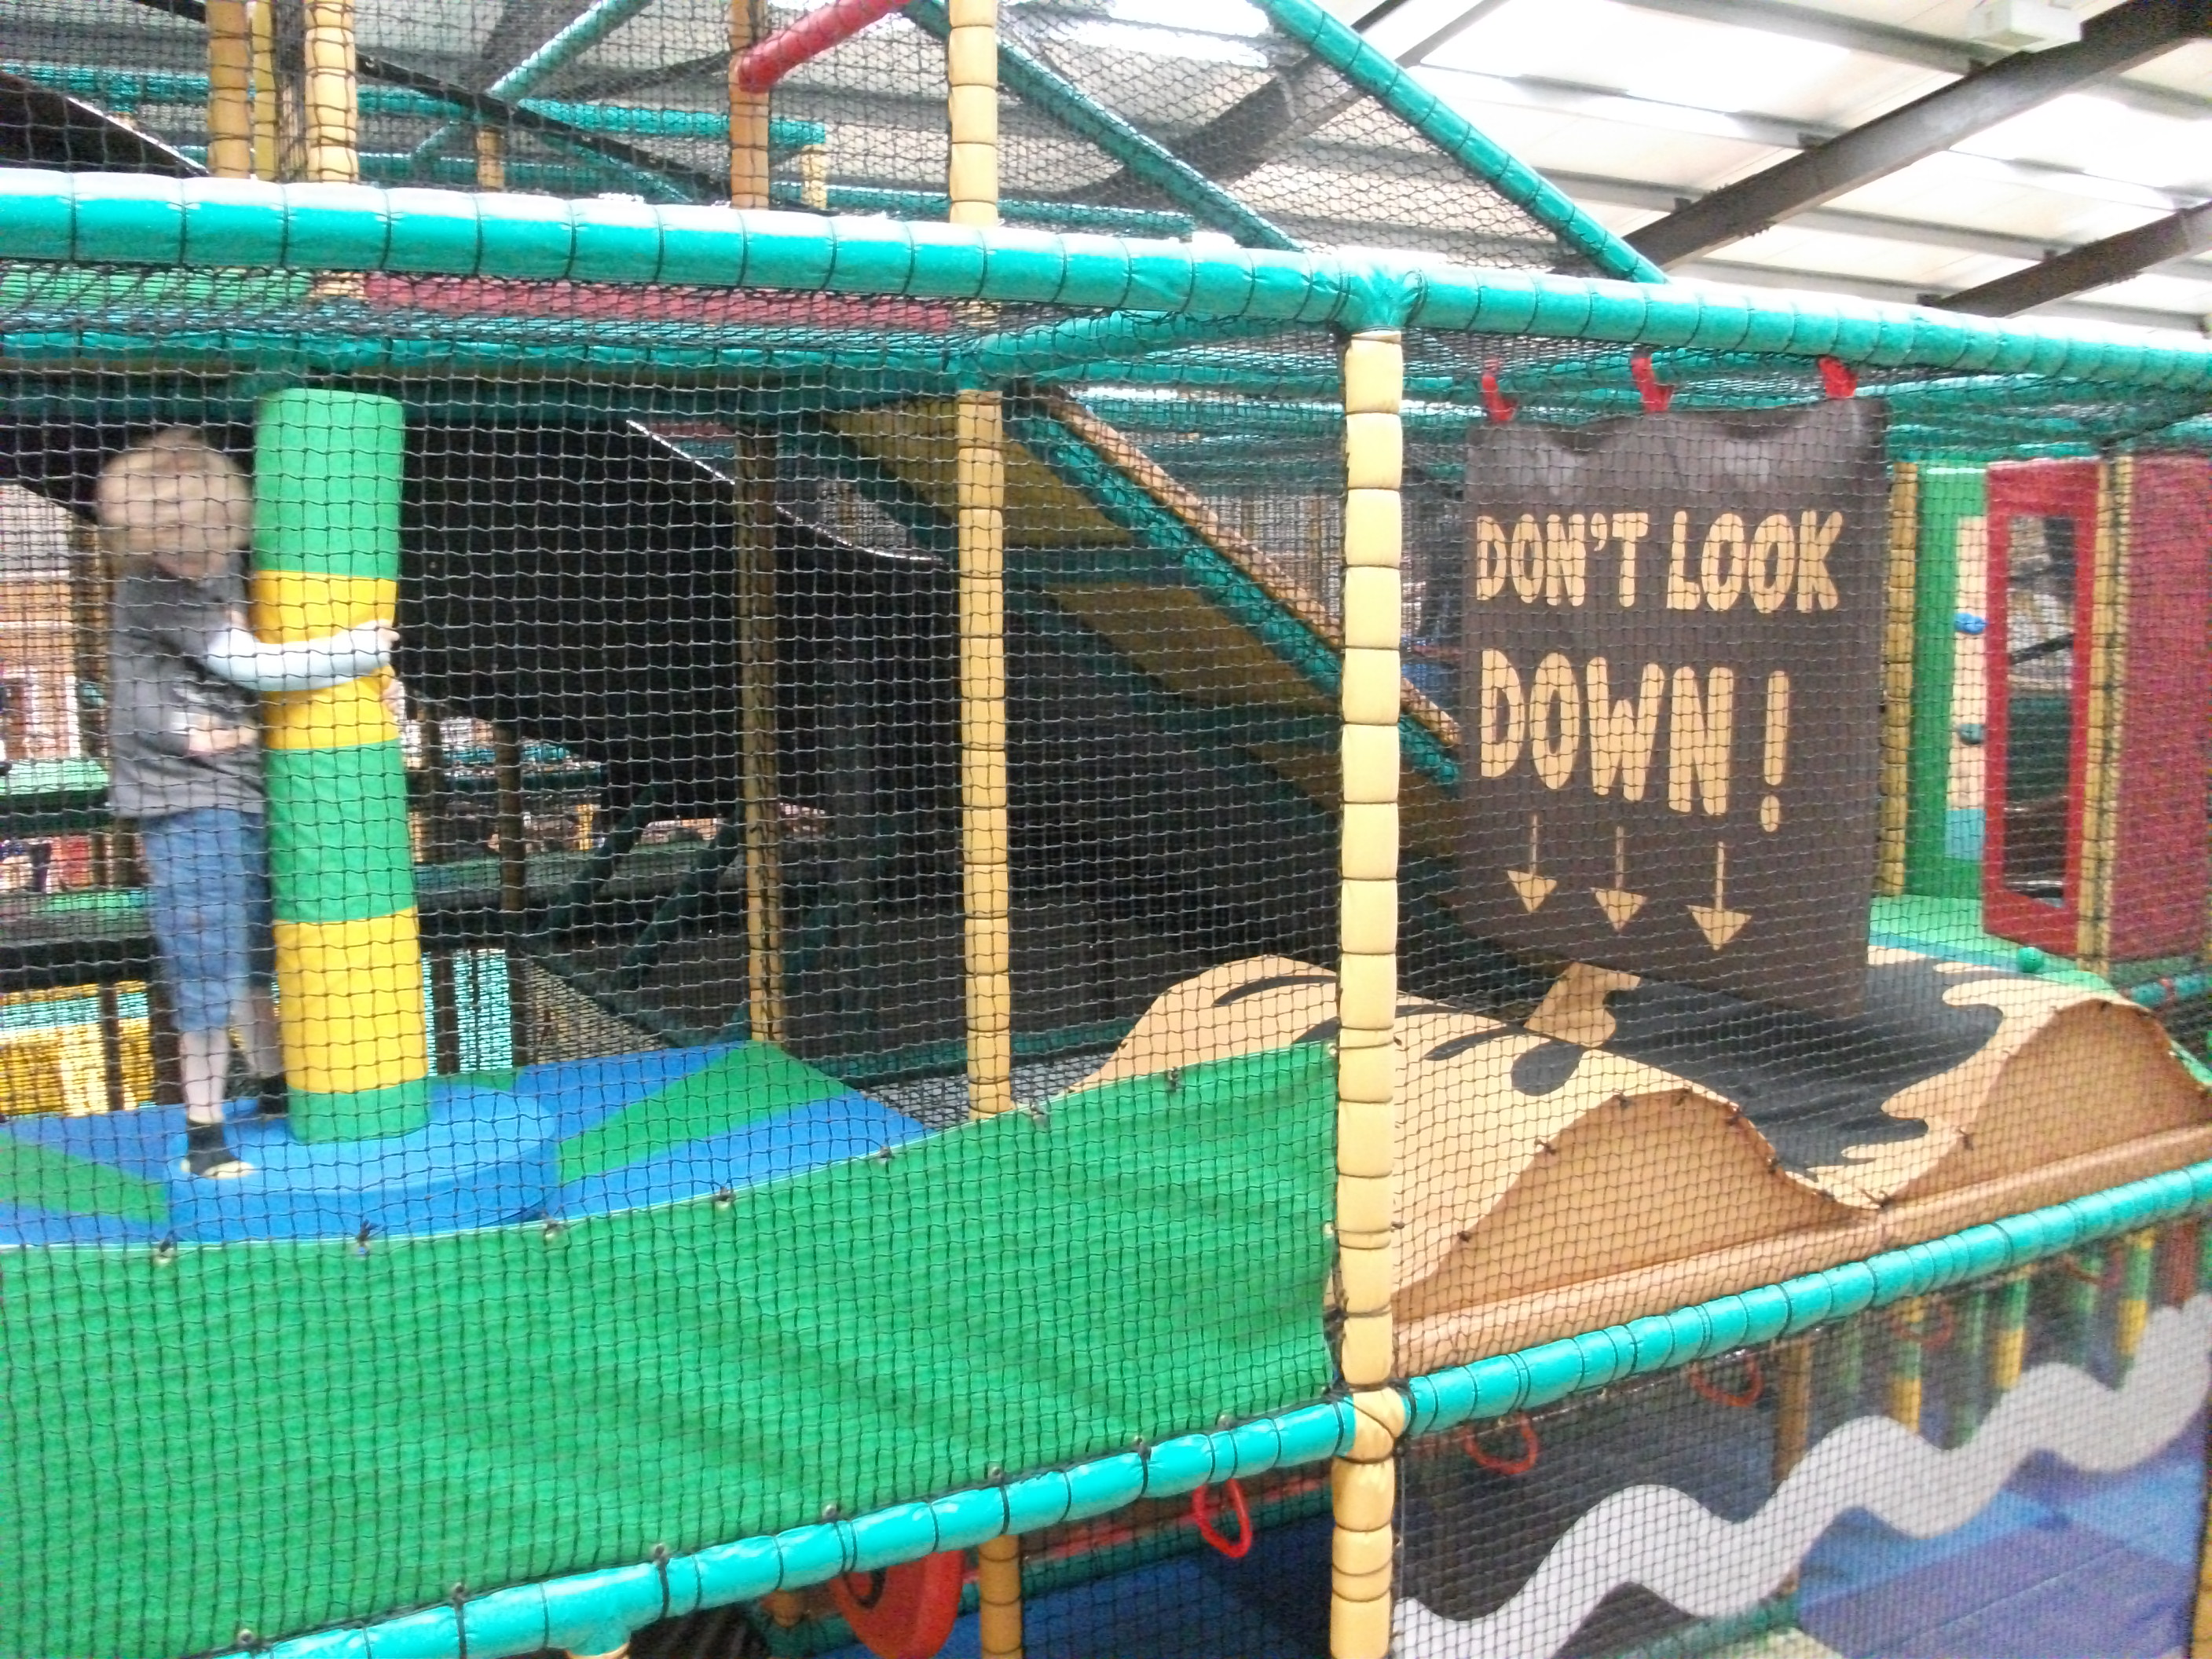 Soft play at Sacrewell Farm